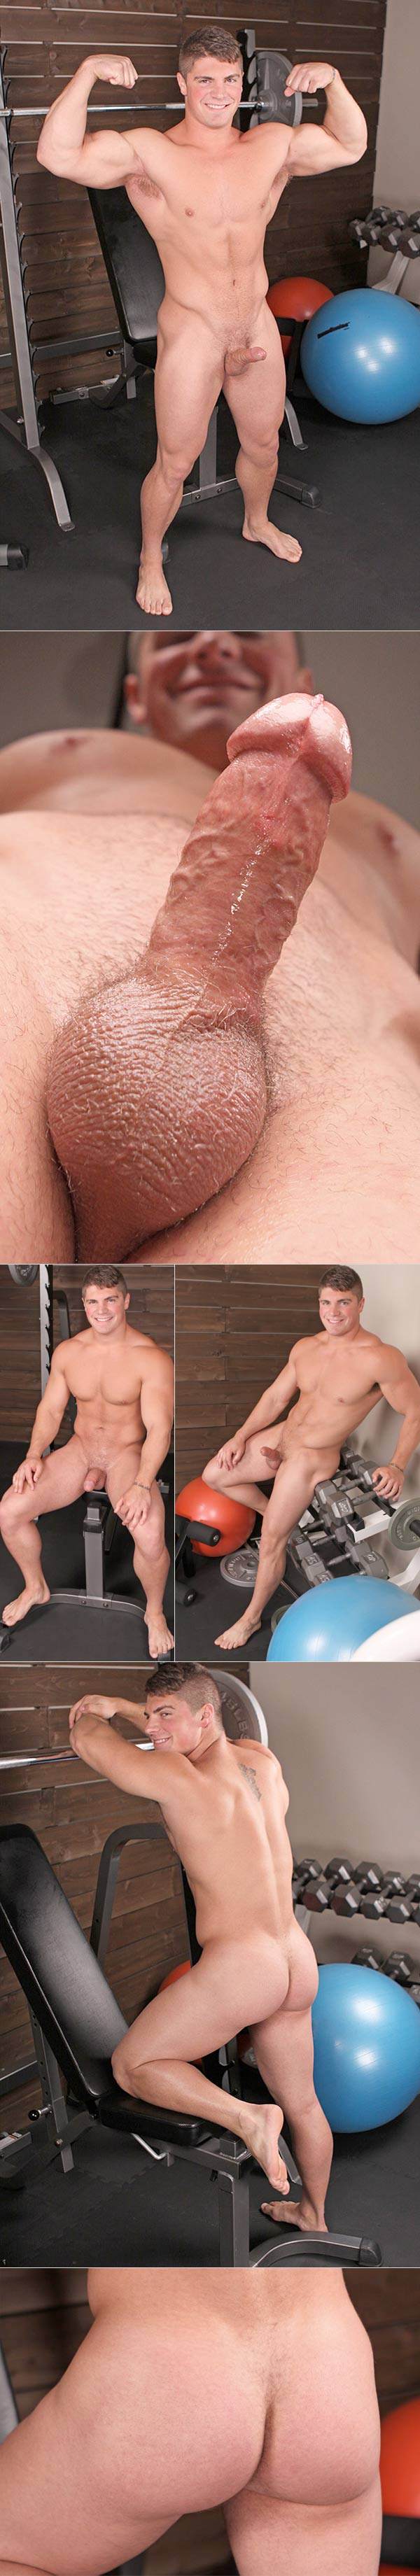 Harrison (Solo) at SeanCody